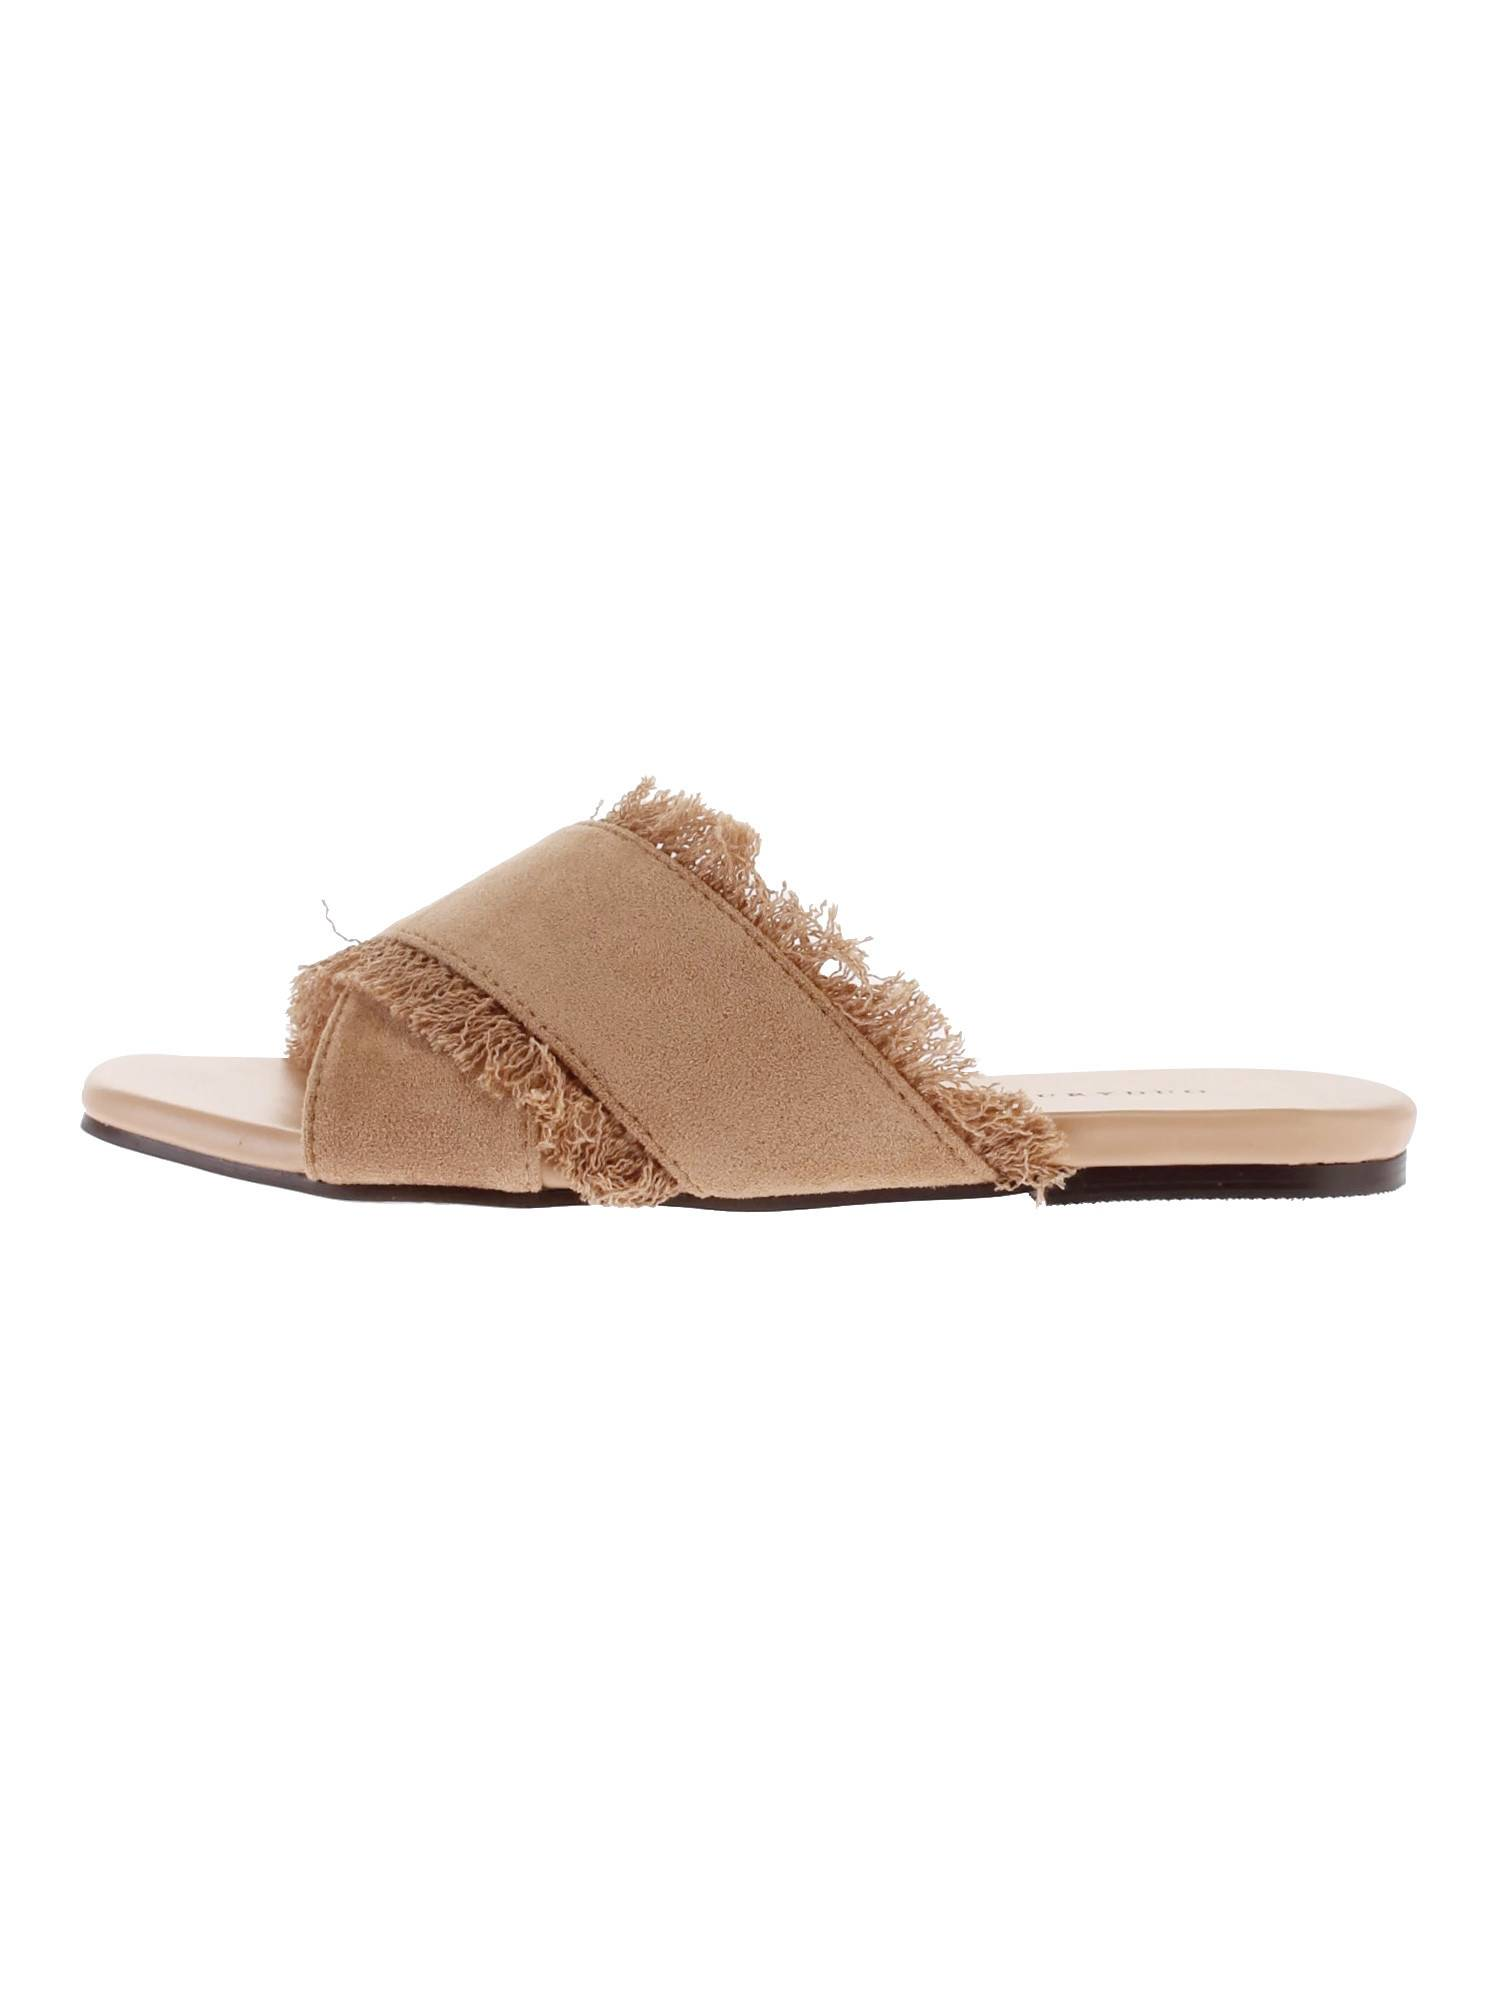 Faux suede cross sandals with fringe